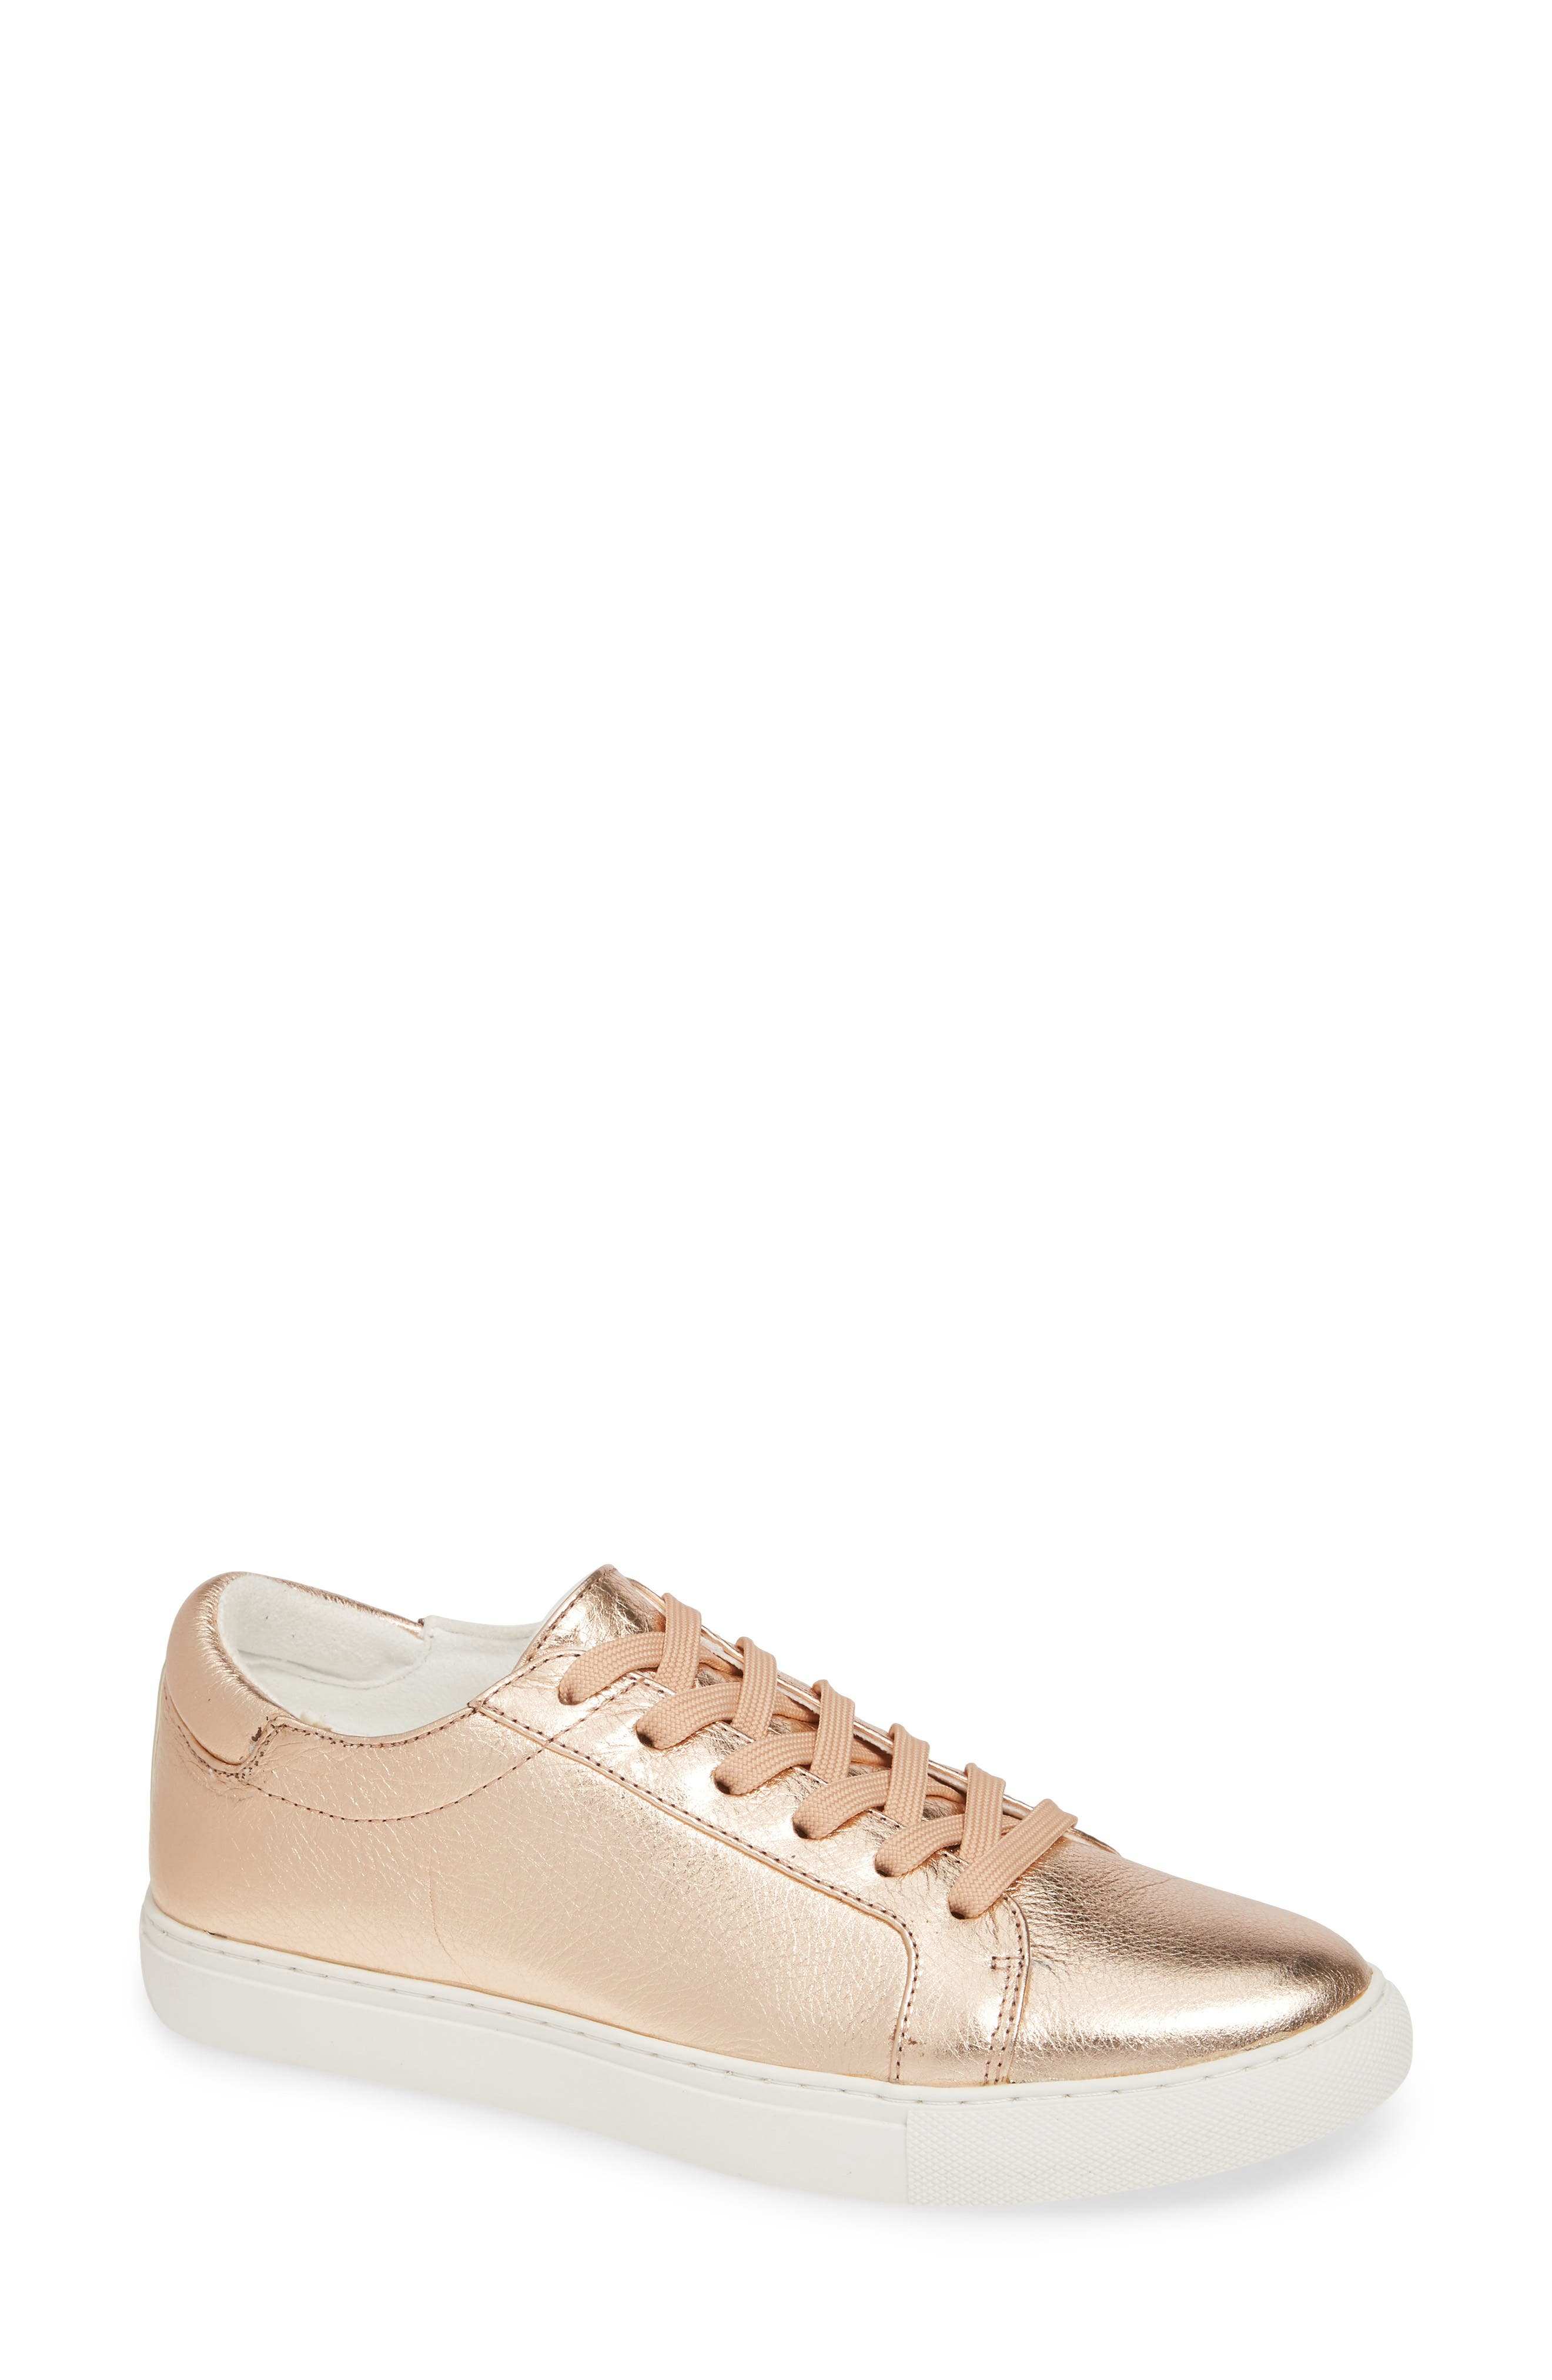 KENNETH COLE NEW YORK, 'Kam' Sneaker, Main thumbnail 1, color, ROSE GOLD LEATHER